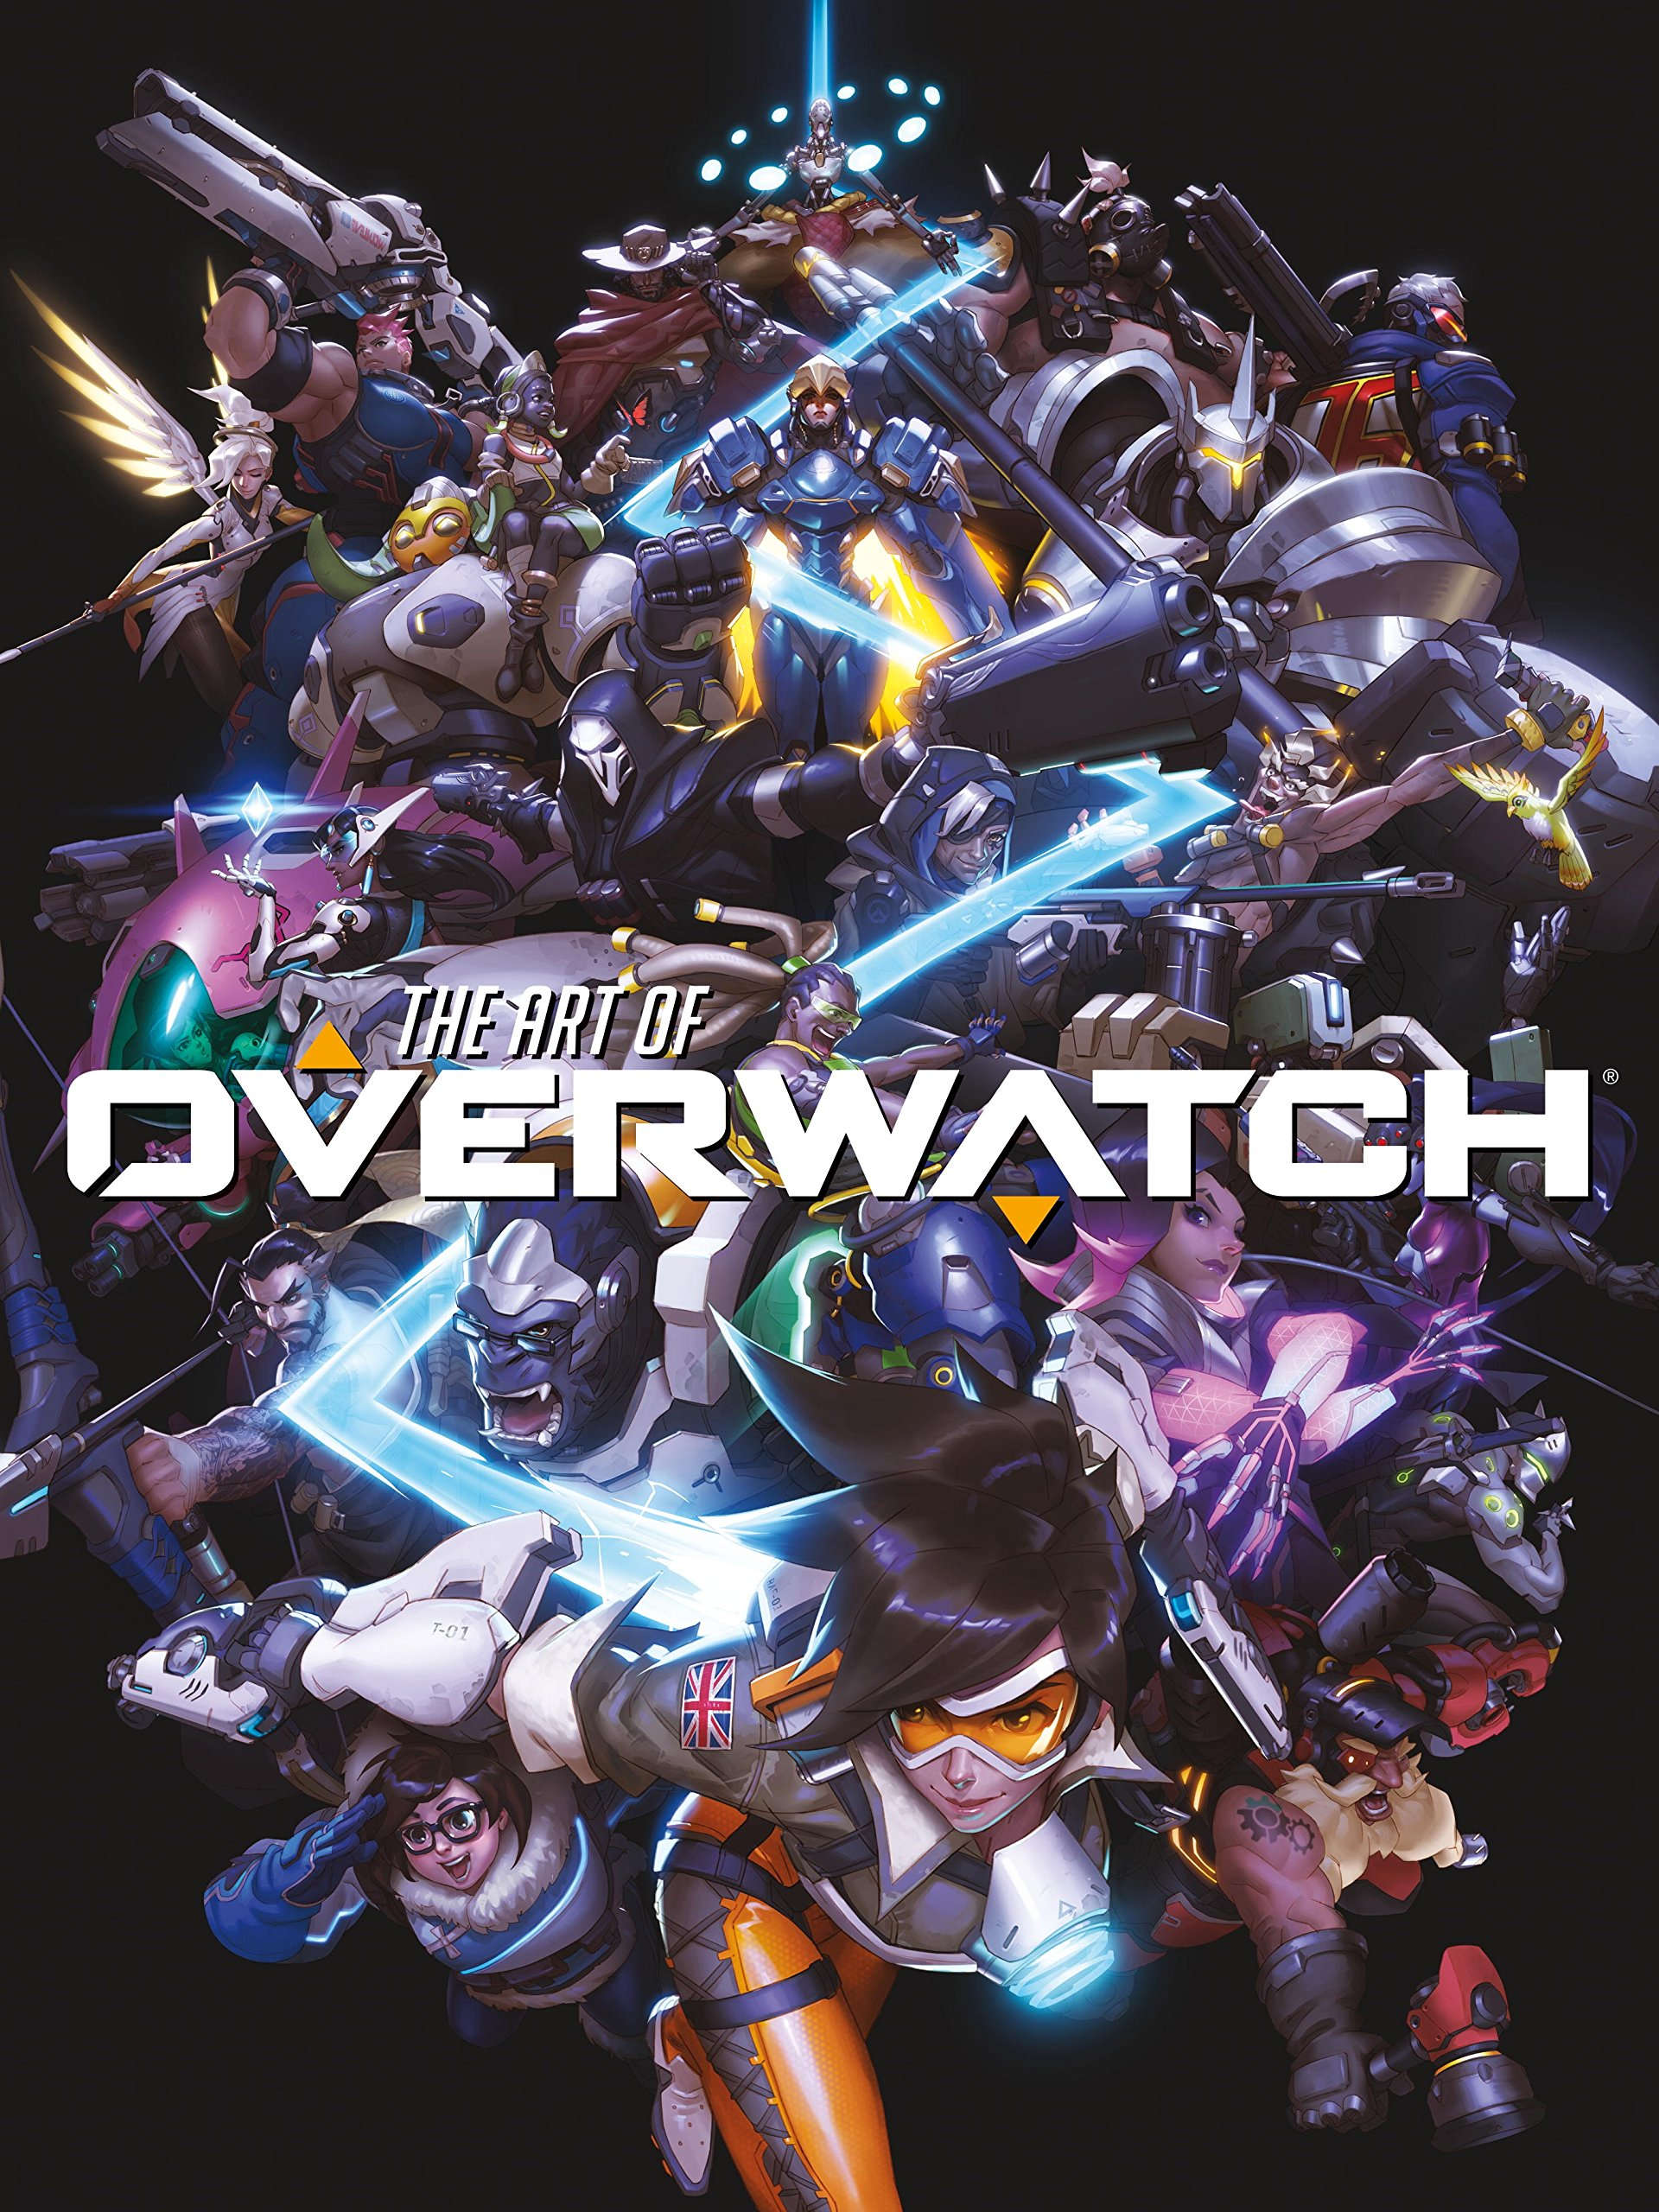 Amazon com: The Art of Overwatch (9781506703671): Blizzard